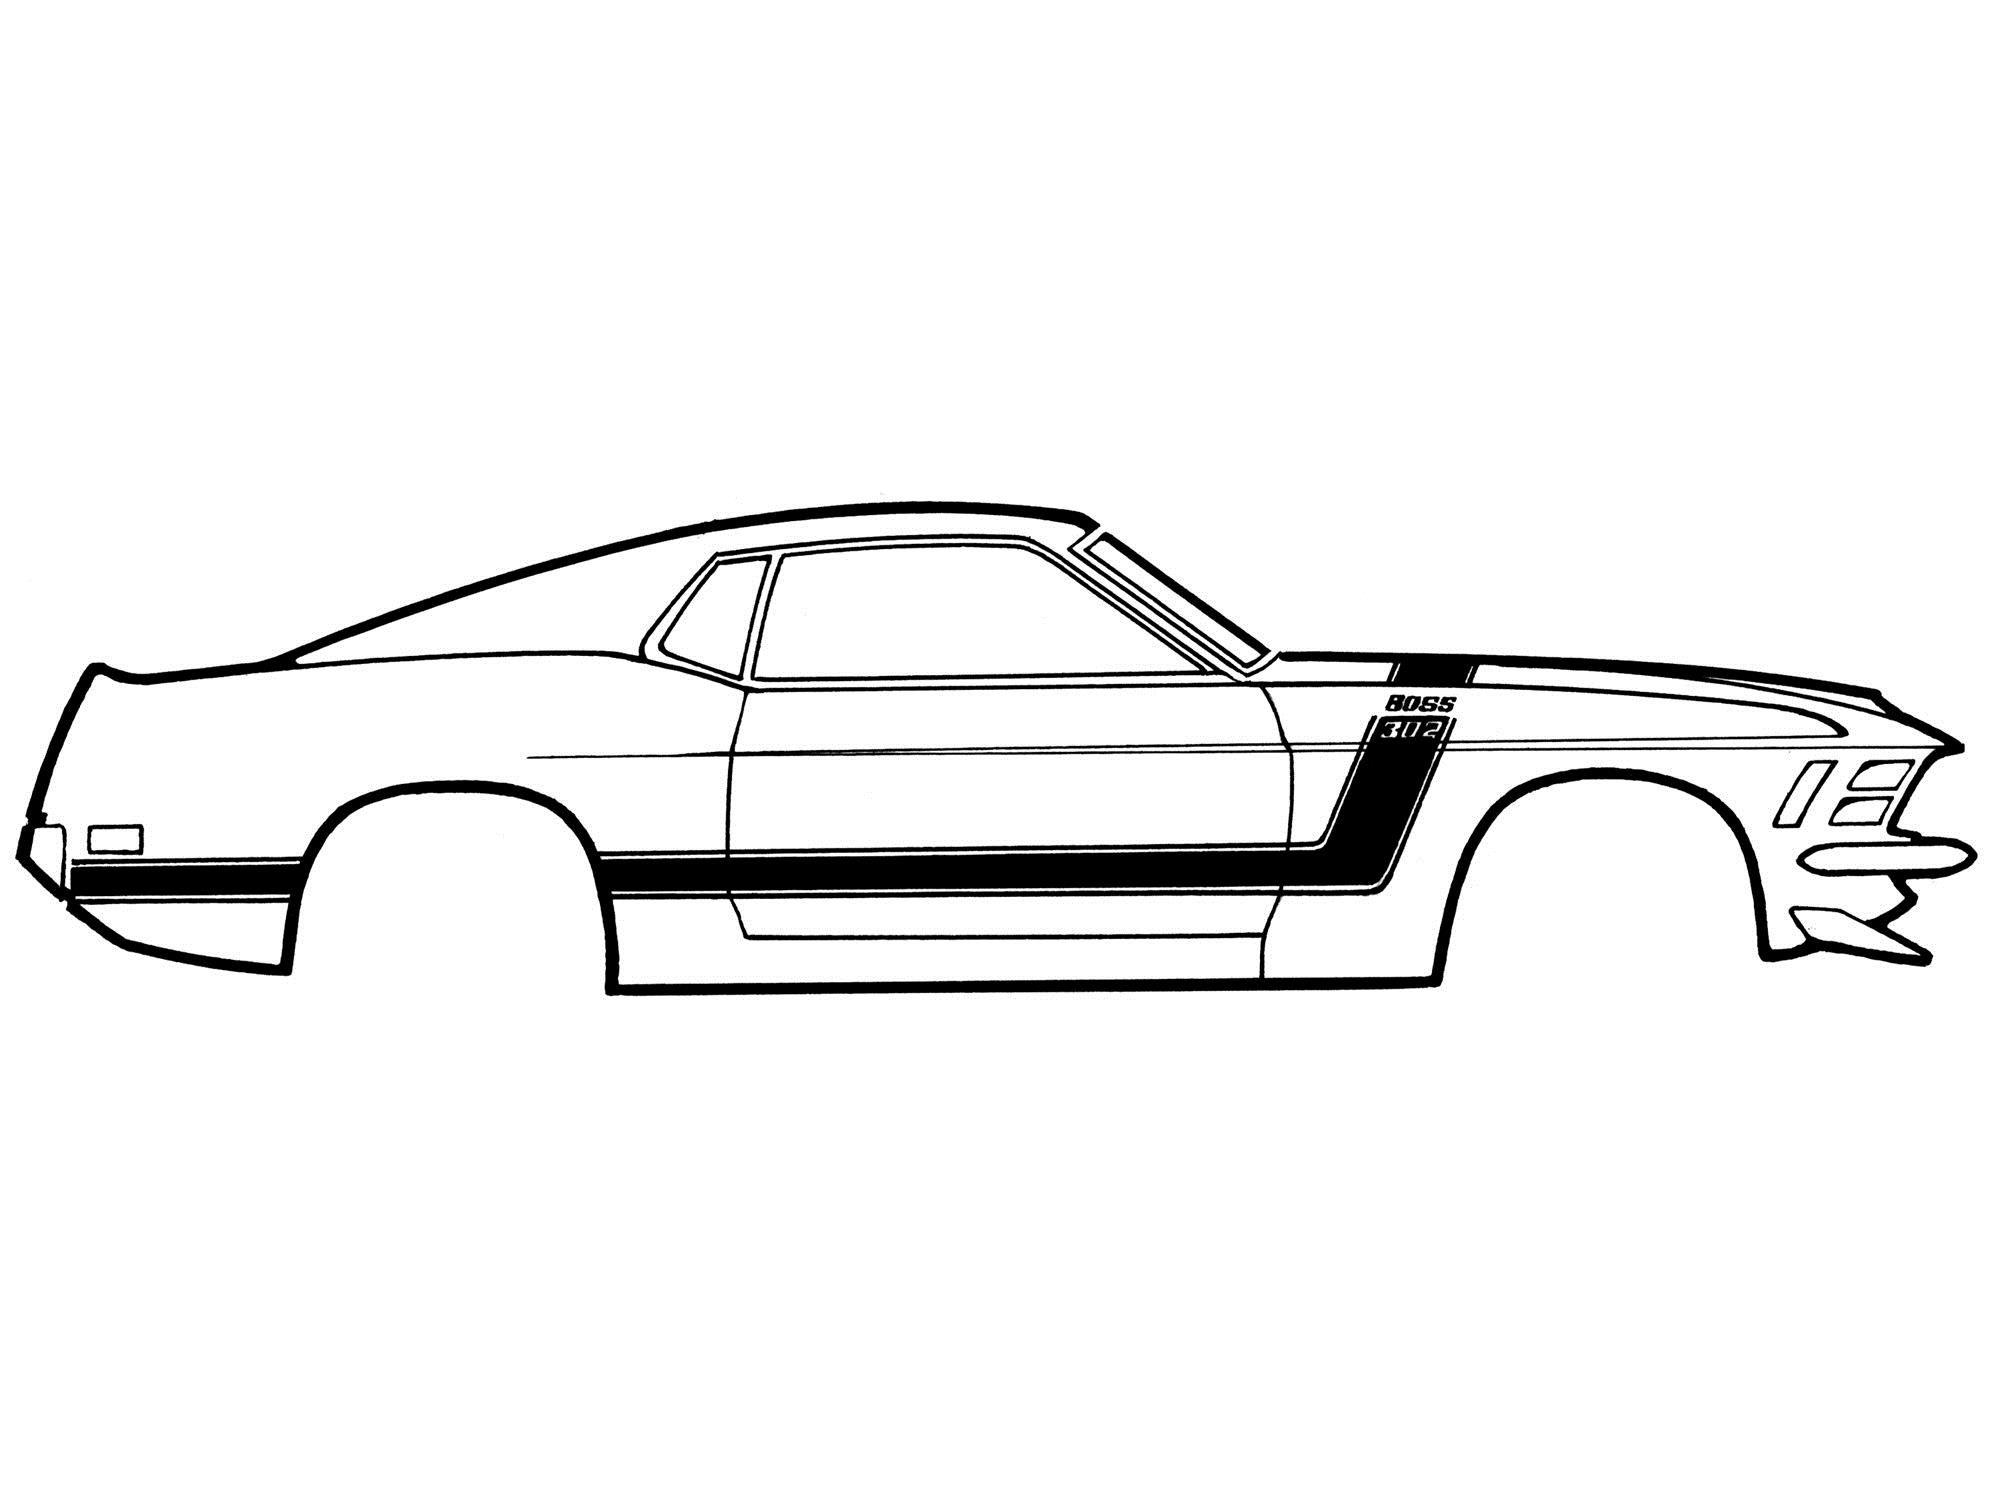 2000x1500 mustang drawing mustang for free download